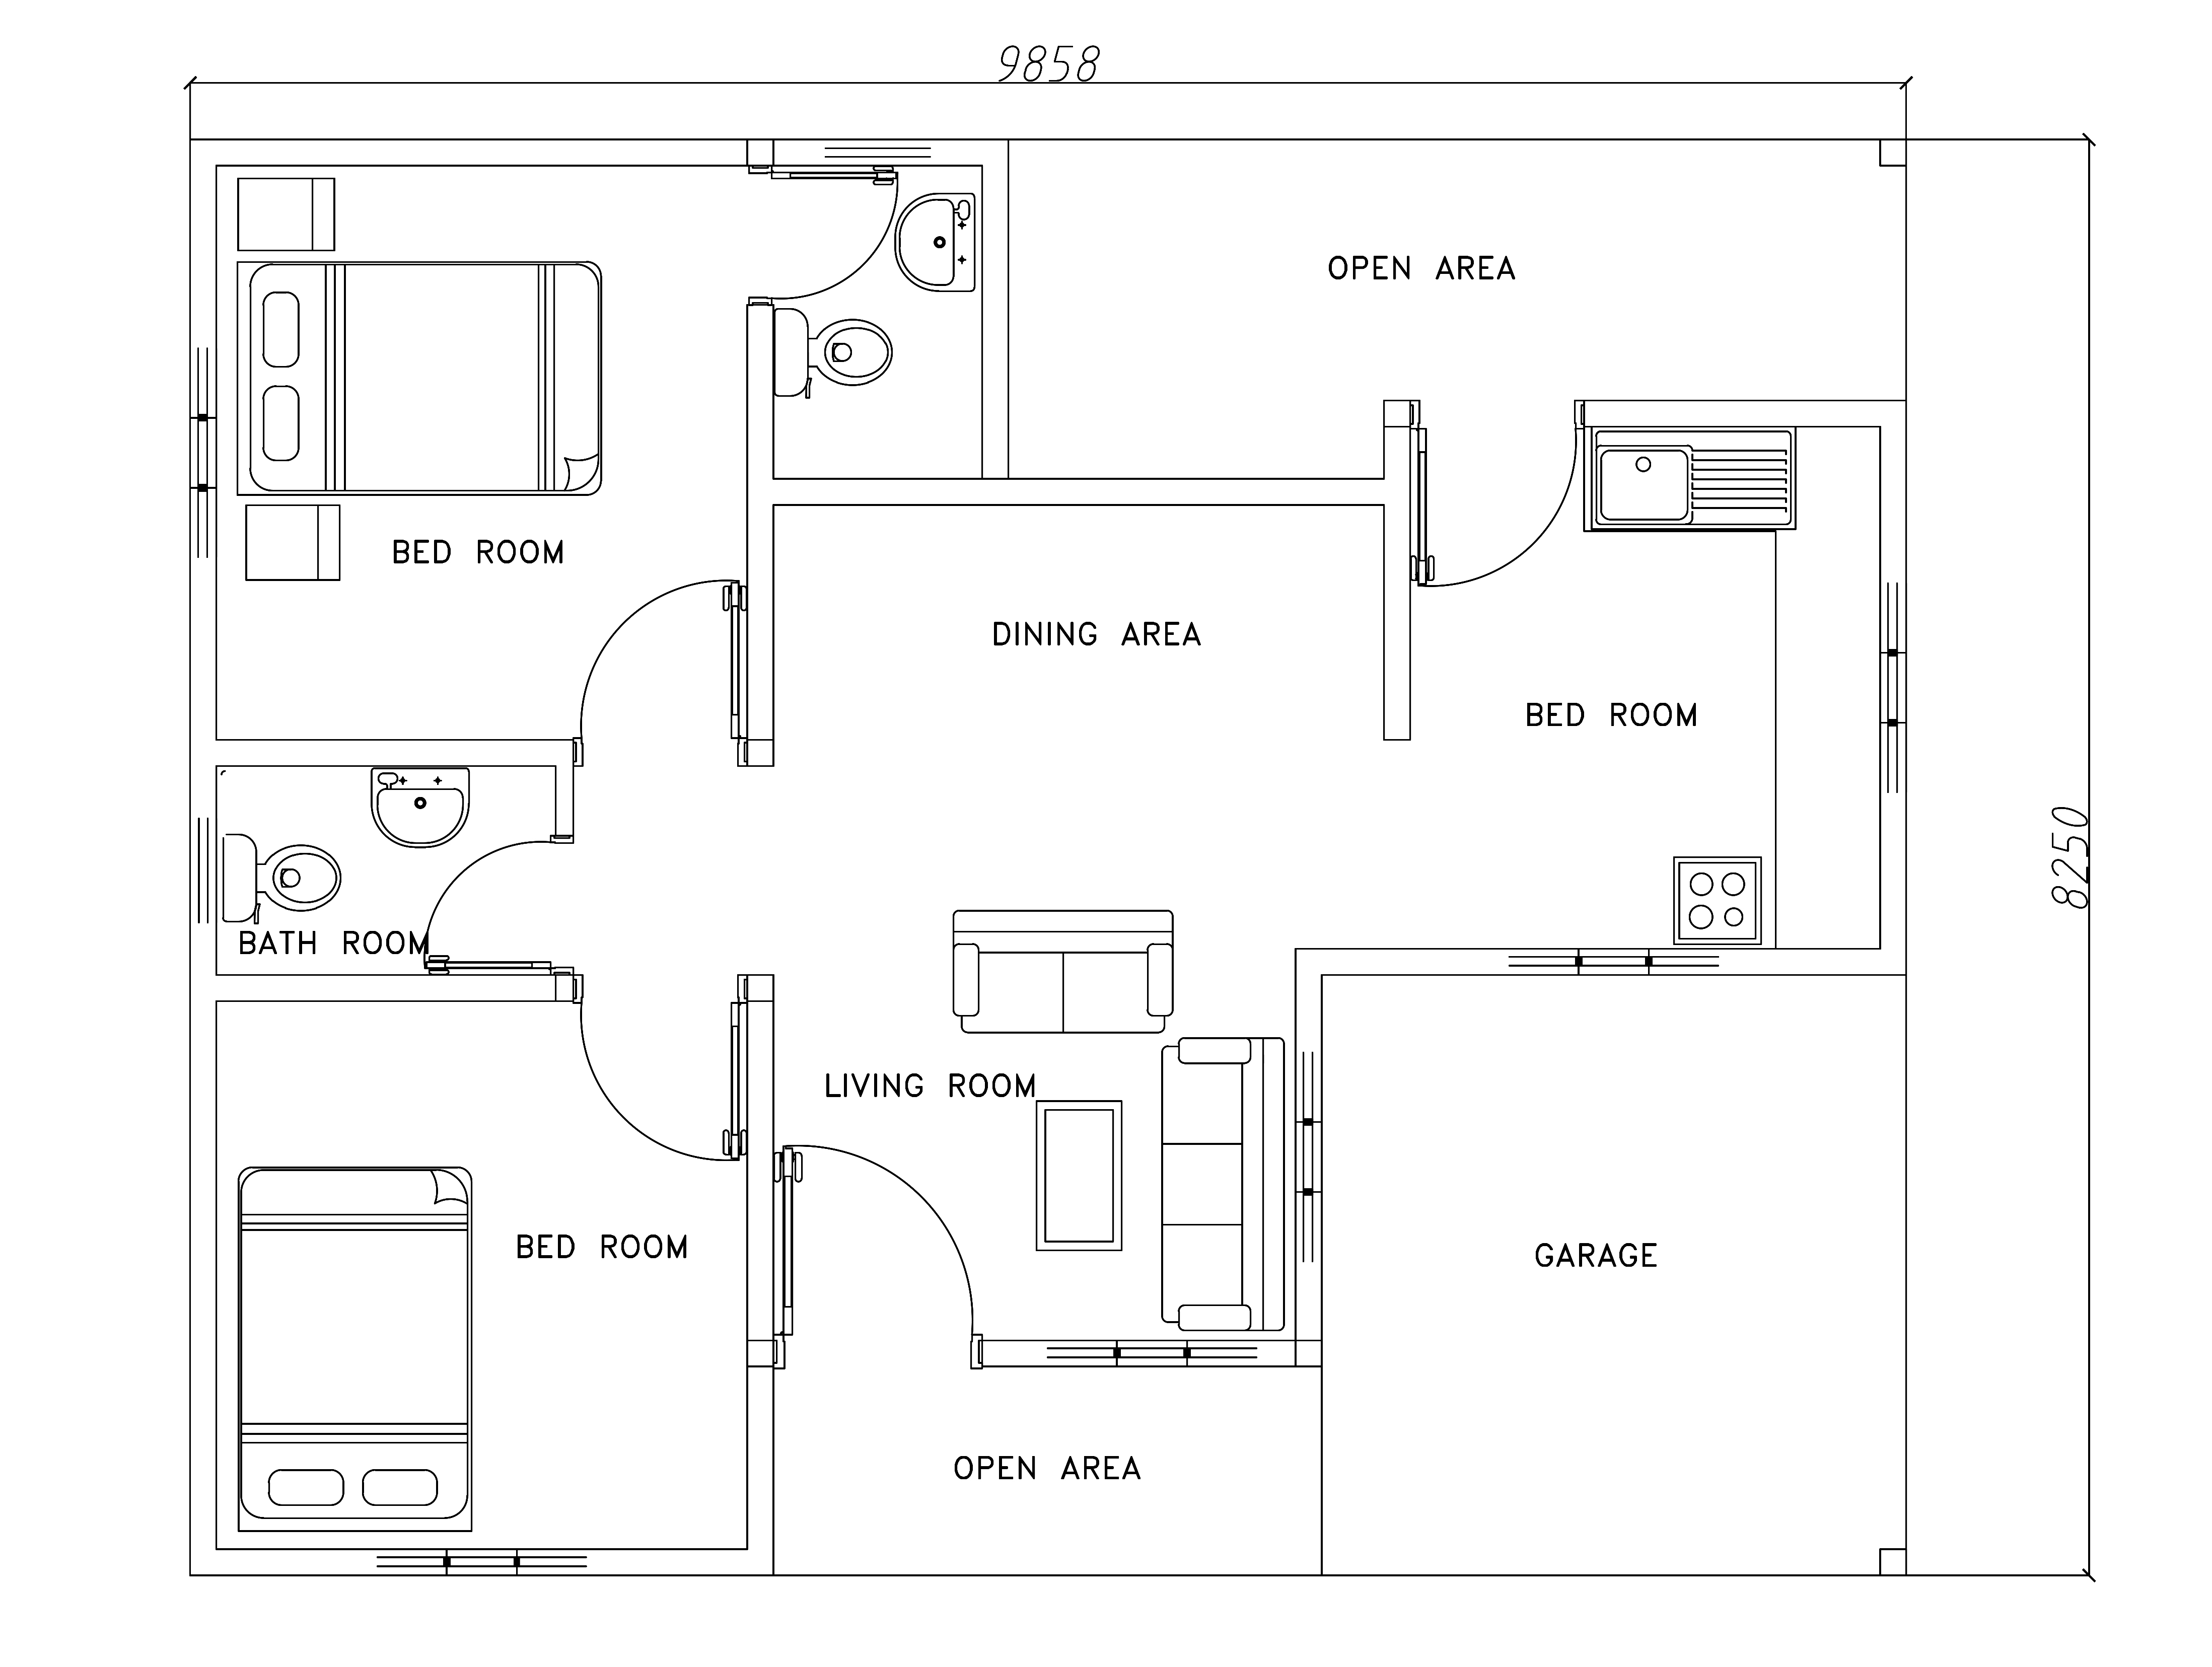 House Plans Cad Files Free